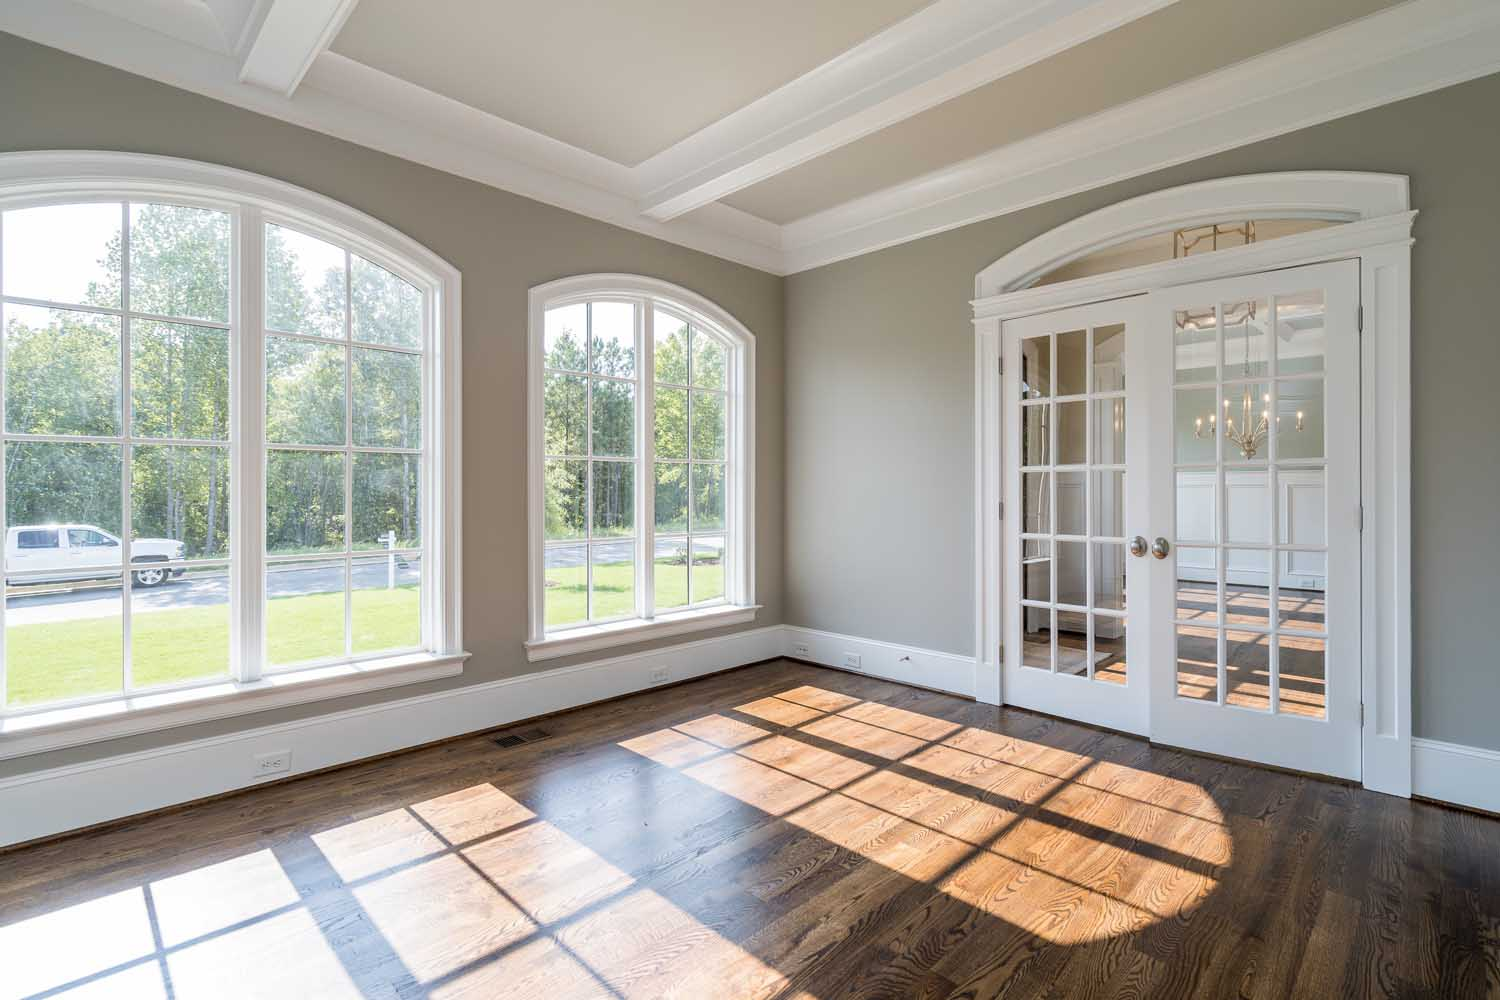 Radius Arch Transom over French doors in home office, solid arch window casings